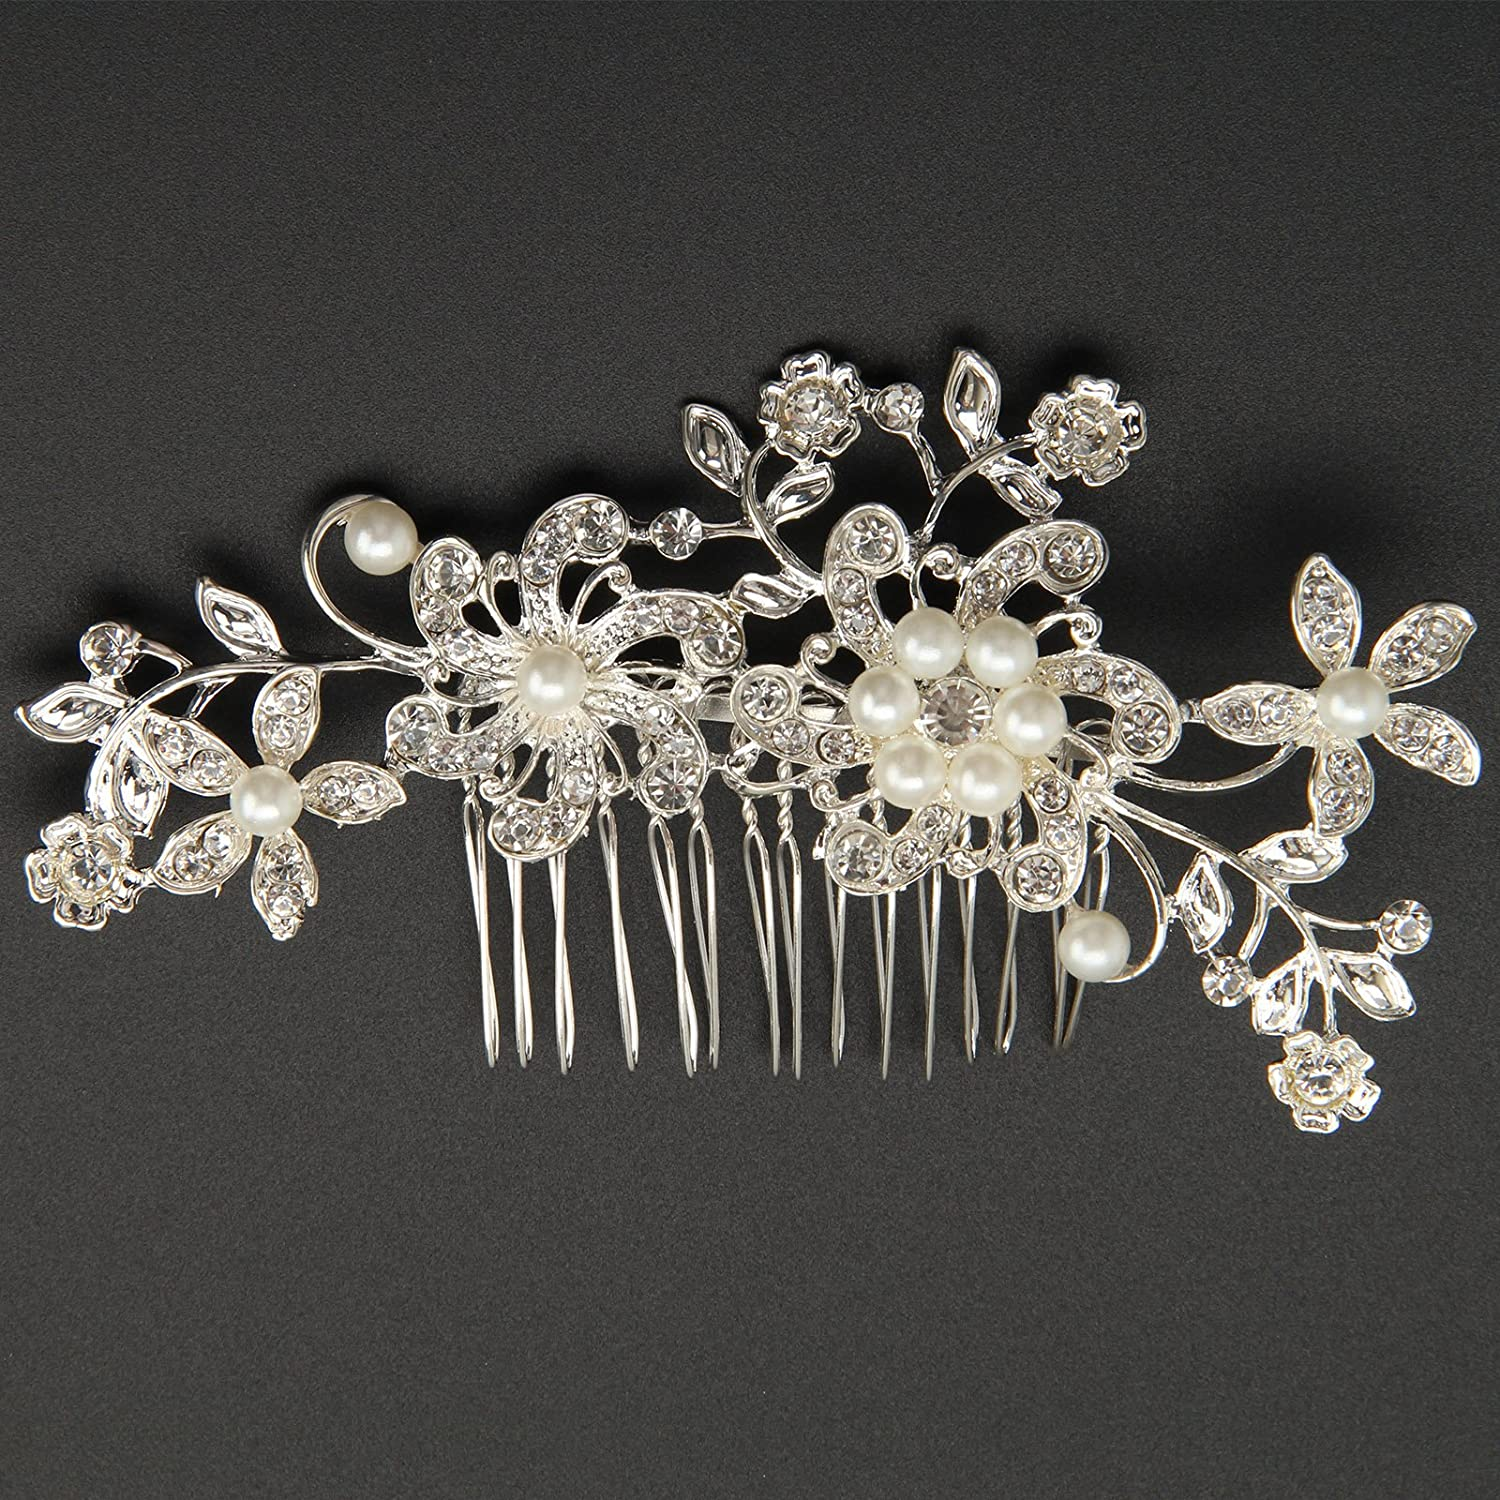 AllRight Bride Hair Comb Wedding Hair Clips Pearls Hair Accessory OEM